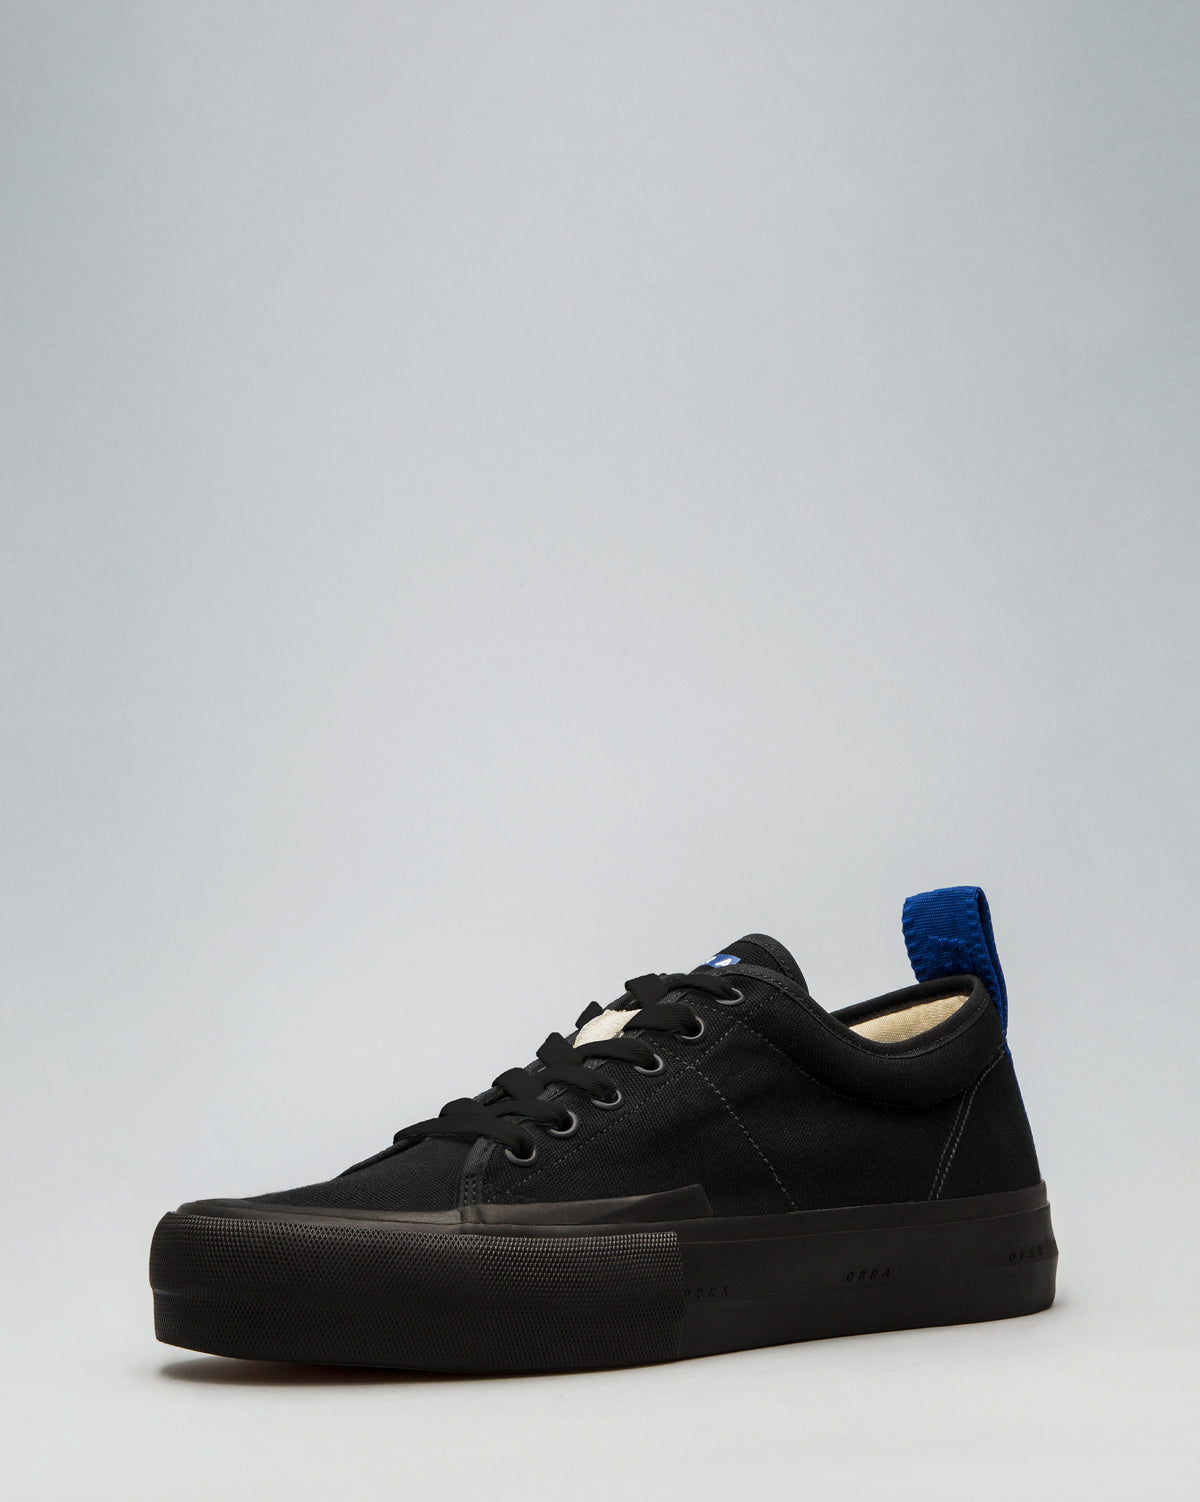 CANVAS LOW WRAP TOE <br/>Black/Black/OBRA Blue